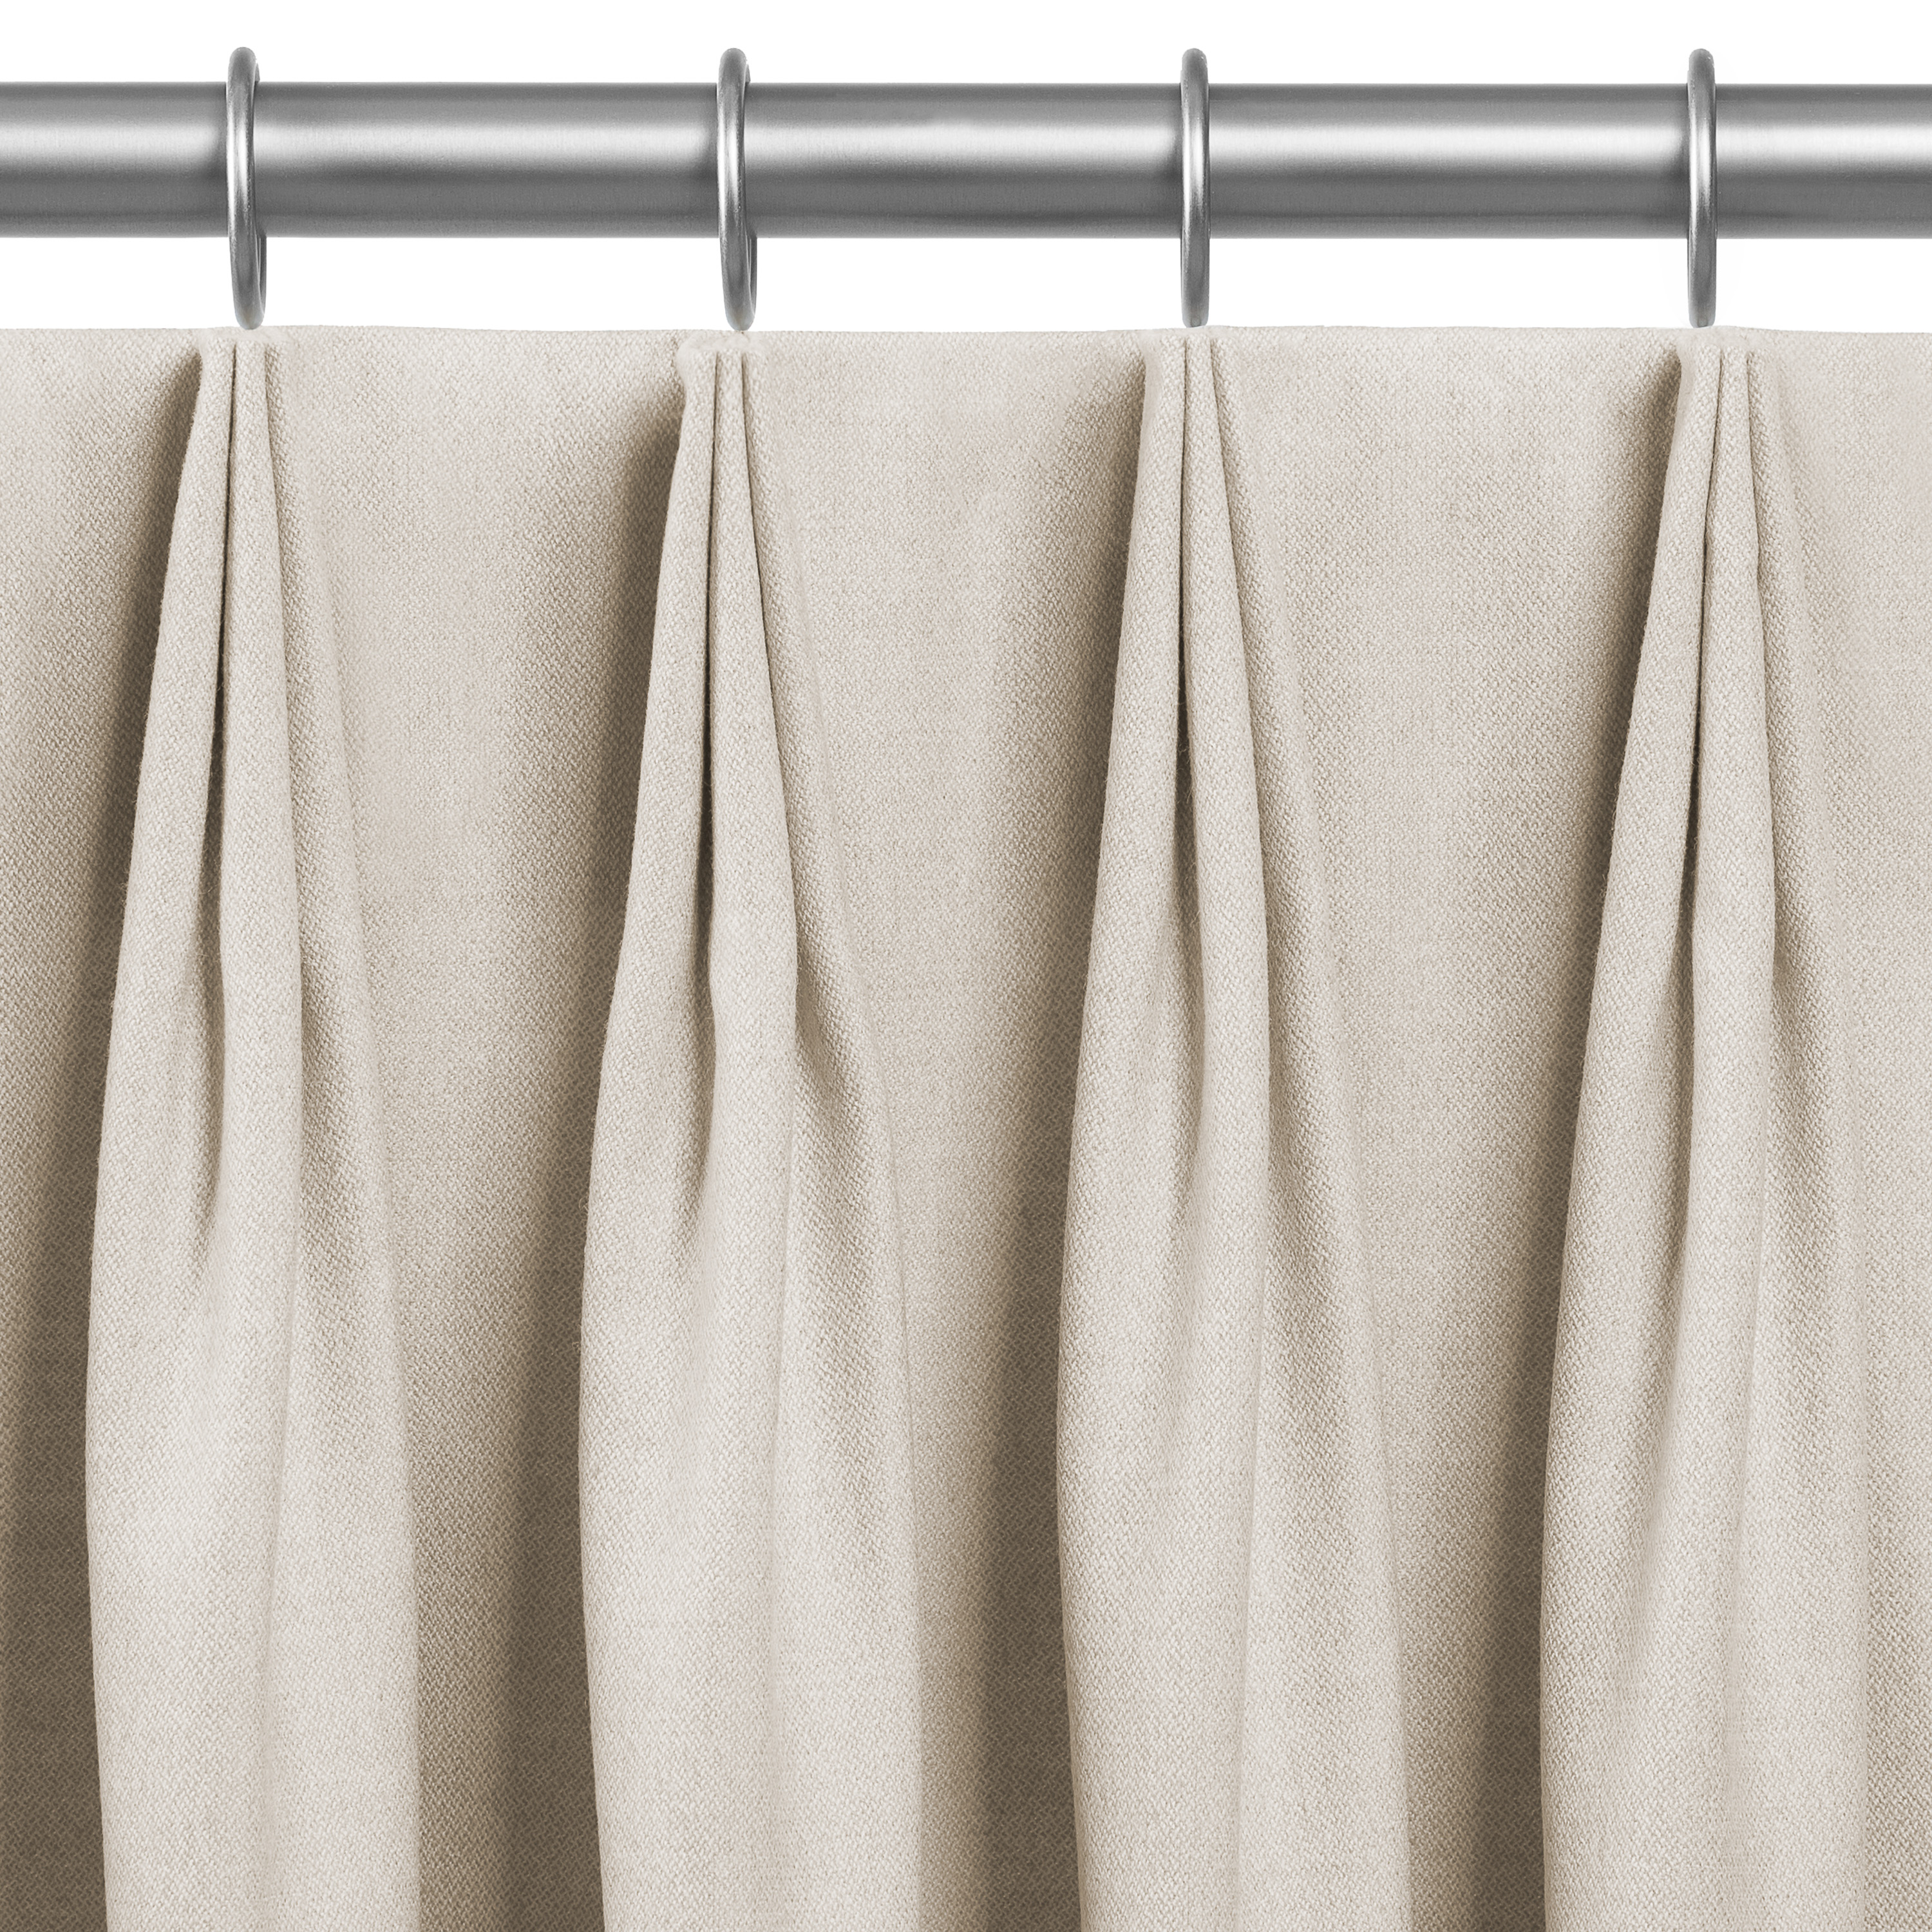 Pinch pleat drapes archives the shade store for Different styles of drapes